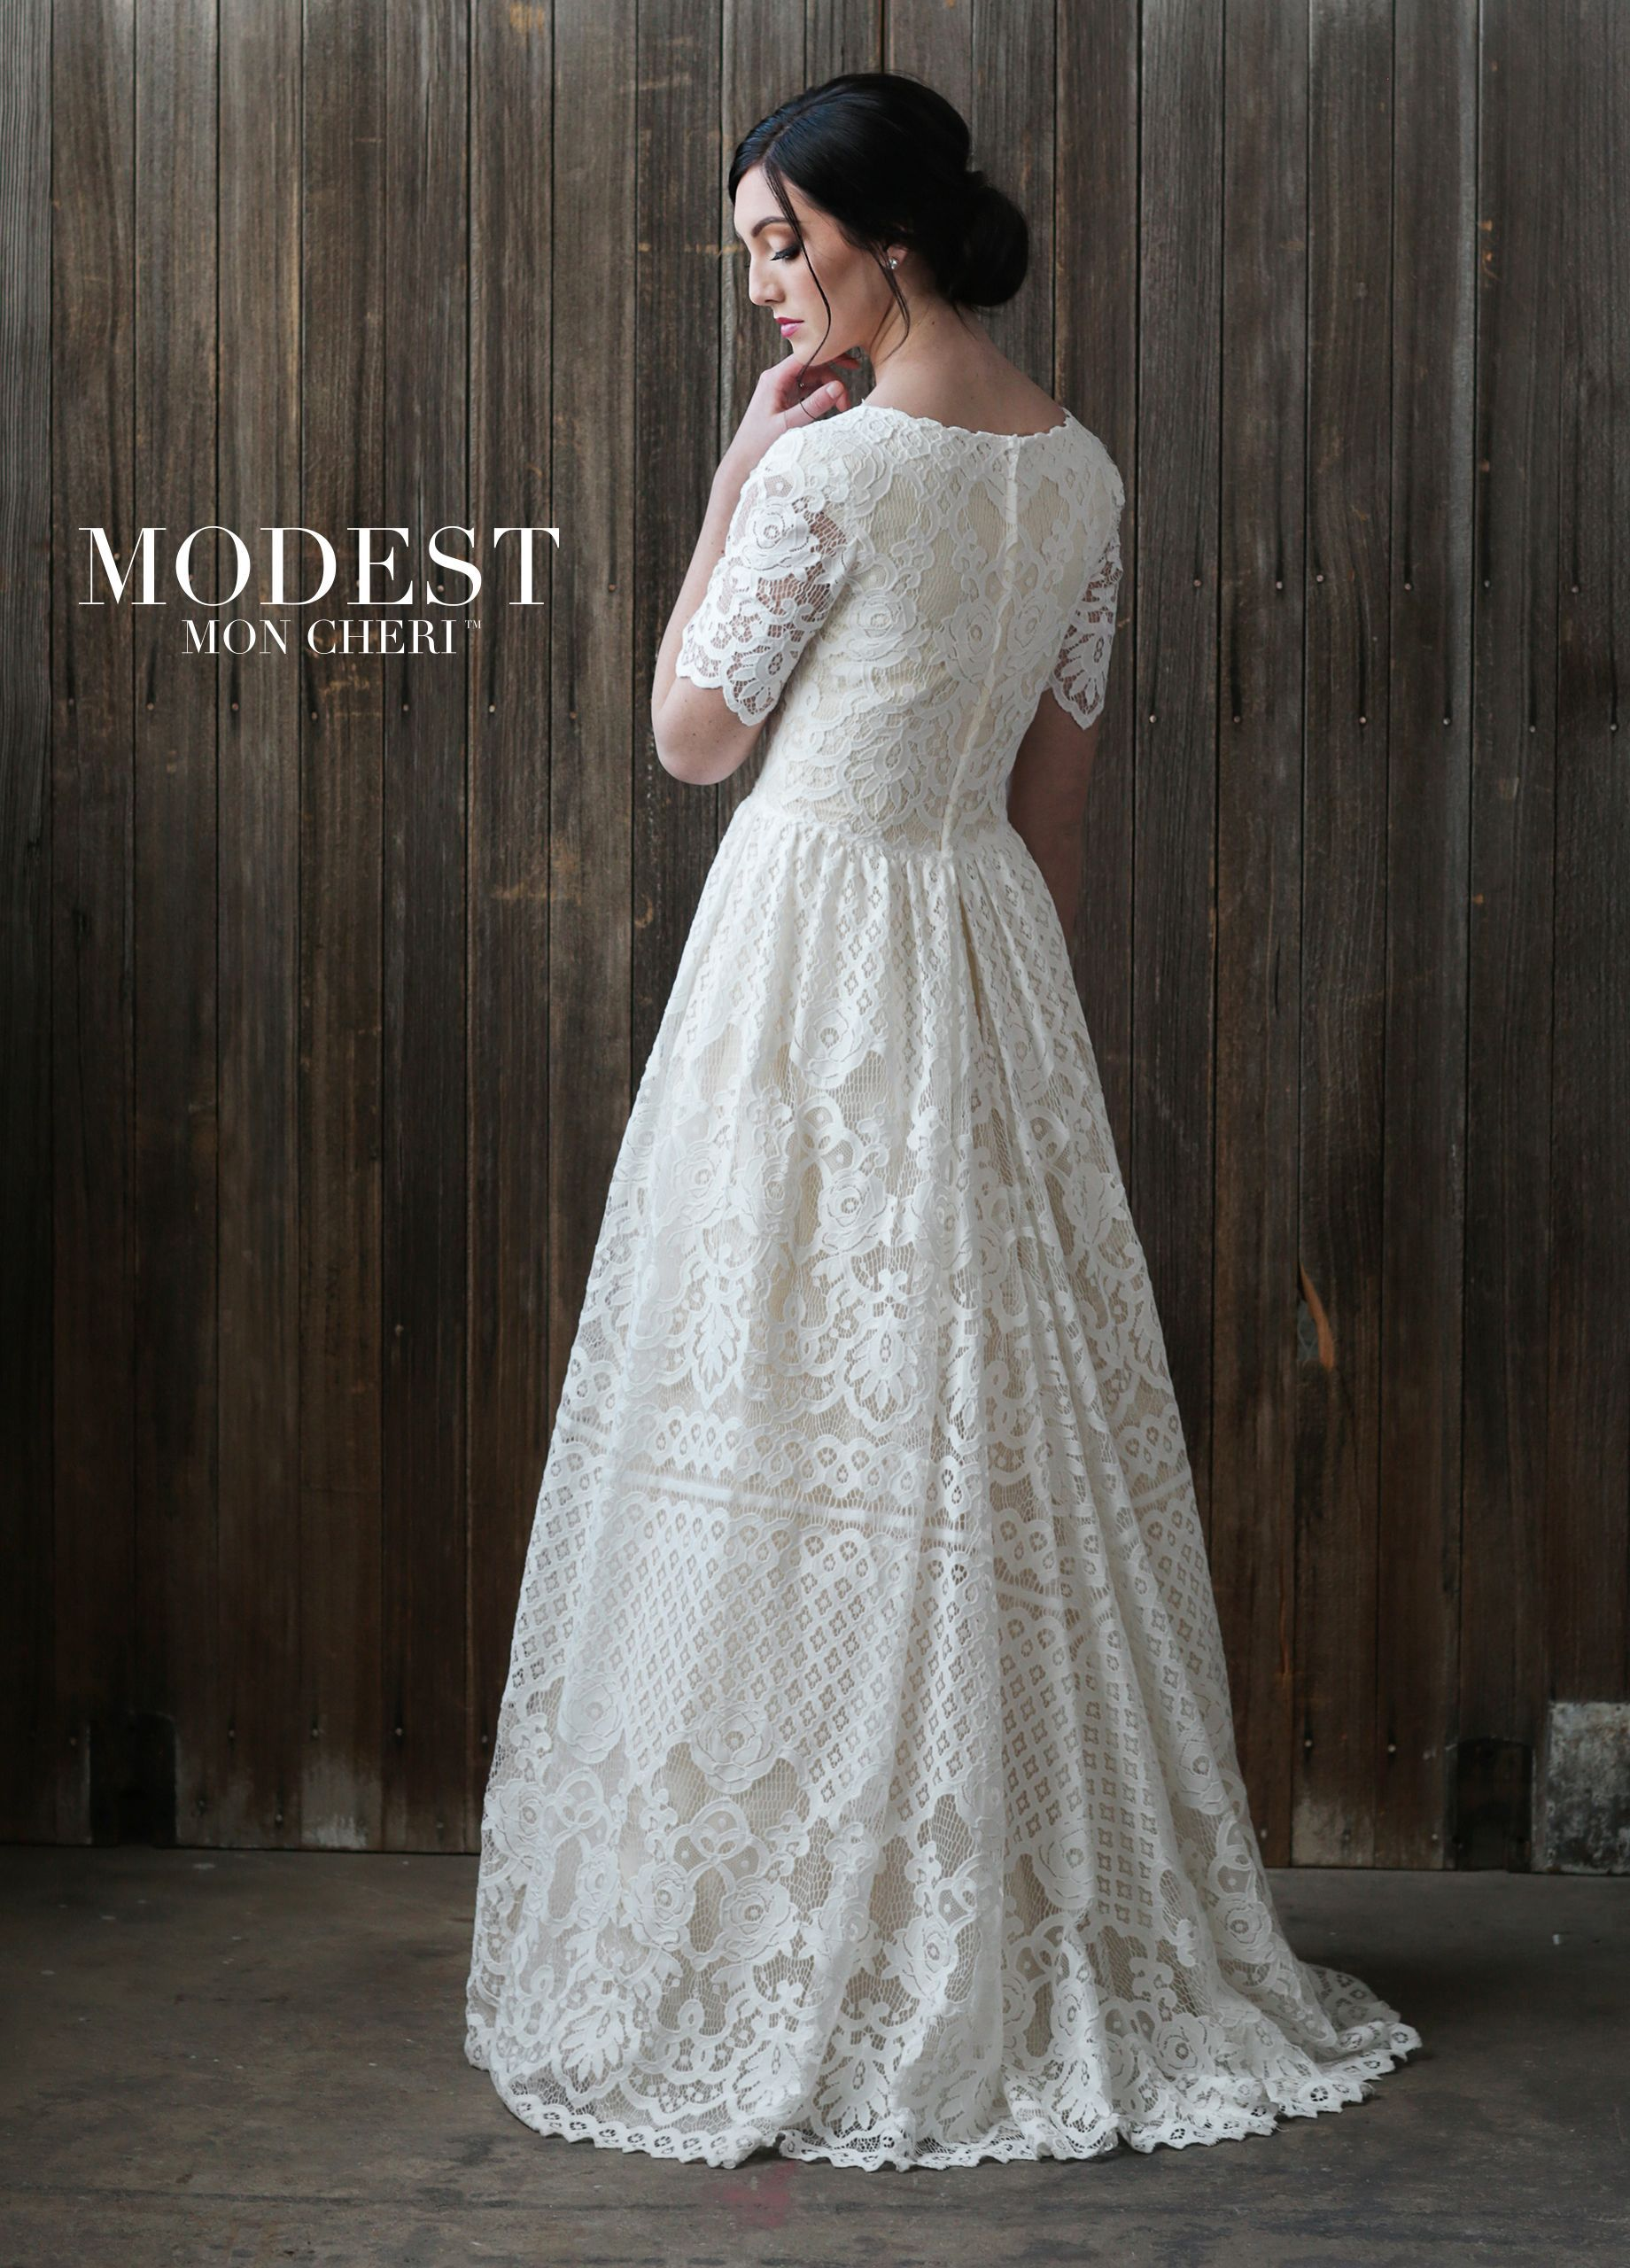 Lace cap sleeve a line wedding dress  Lace Aline Conservative Wedding Dress  TR  Henry Fairy Tail